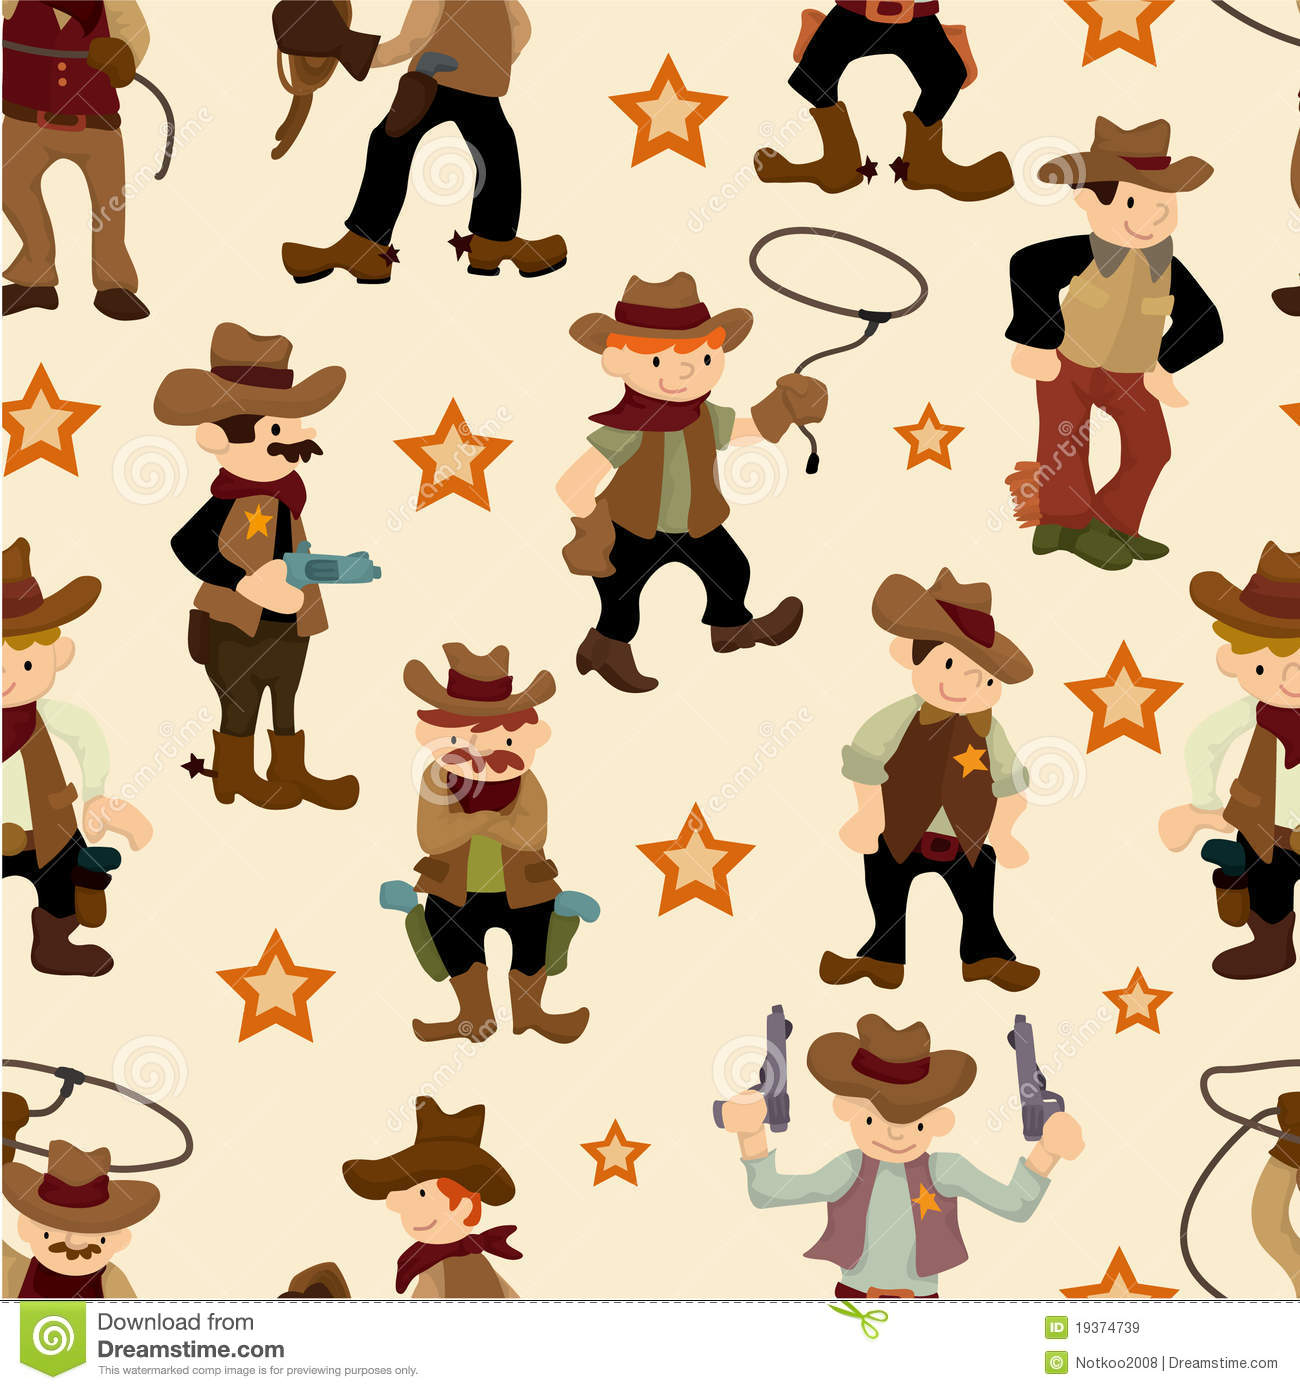 Seamless West Cowboy Pattern Royalty Free Stock Images ...